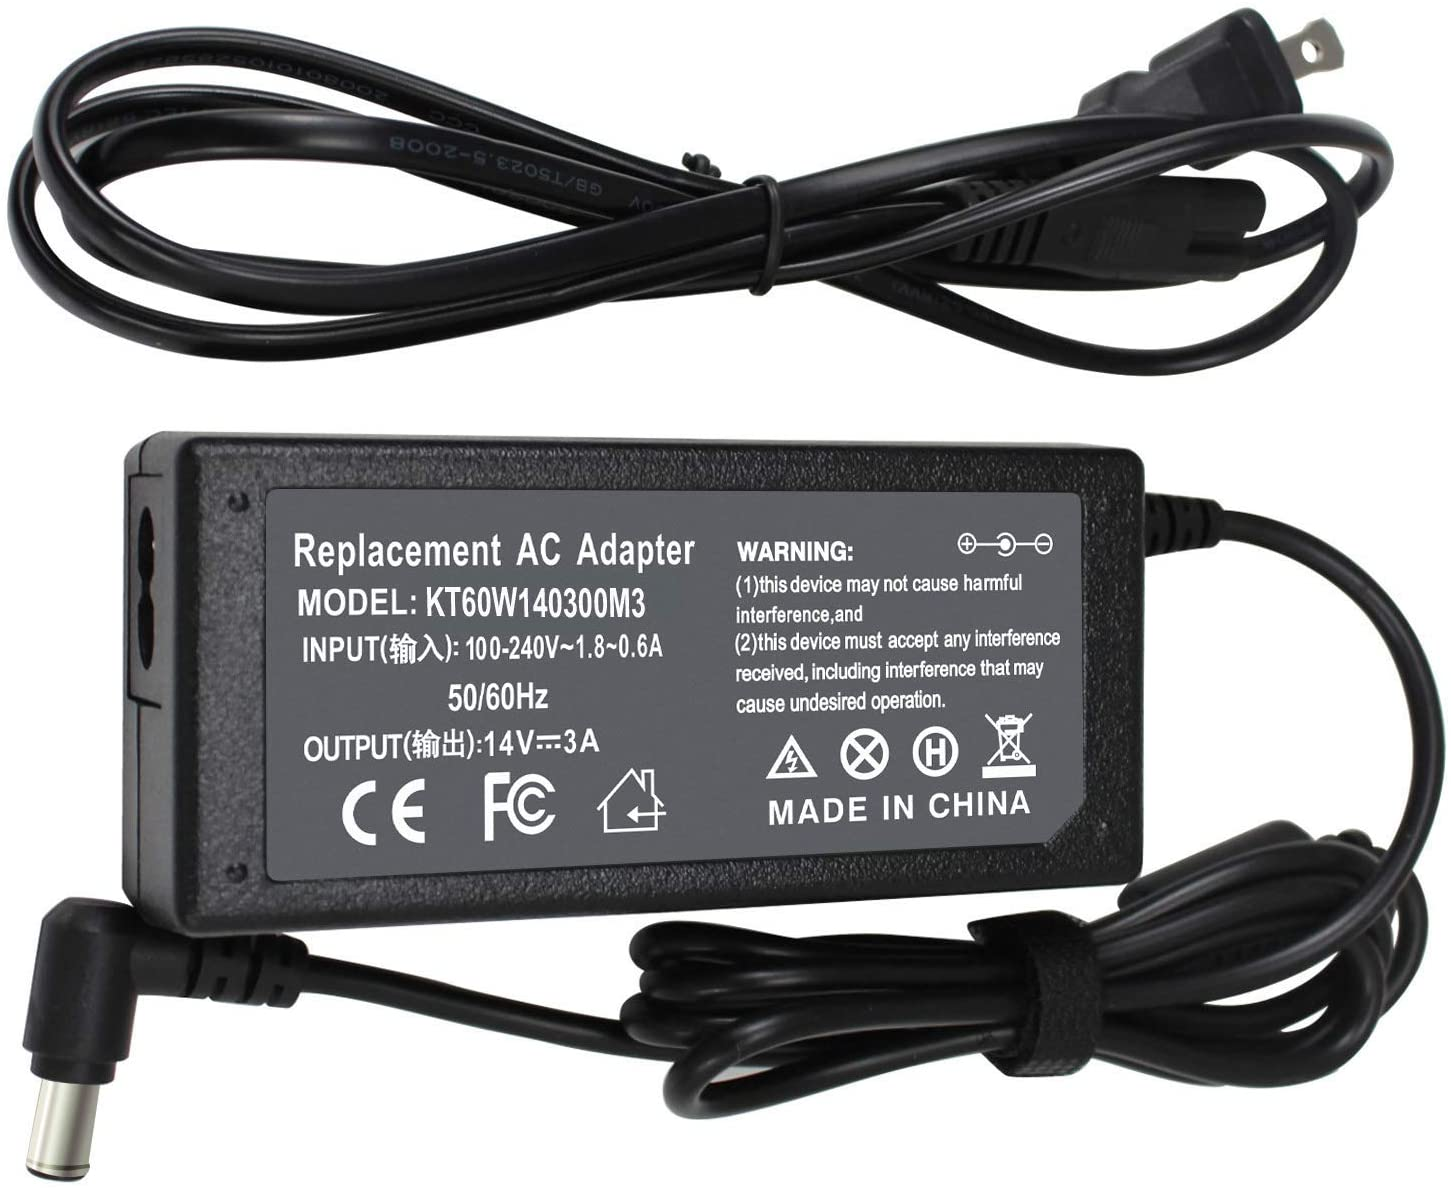 AC Charger Monitor Power Supply Compatible with Samsung SyncMaster LCD/TFT 770 S20D300H 193p S22A300B S24B150BL S22C300H S23C350H S27D390H P2770 P2770FH S27D590P U28E590D A3514-DPN AD-4214N Cord